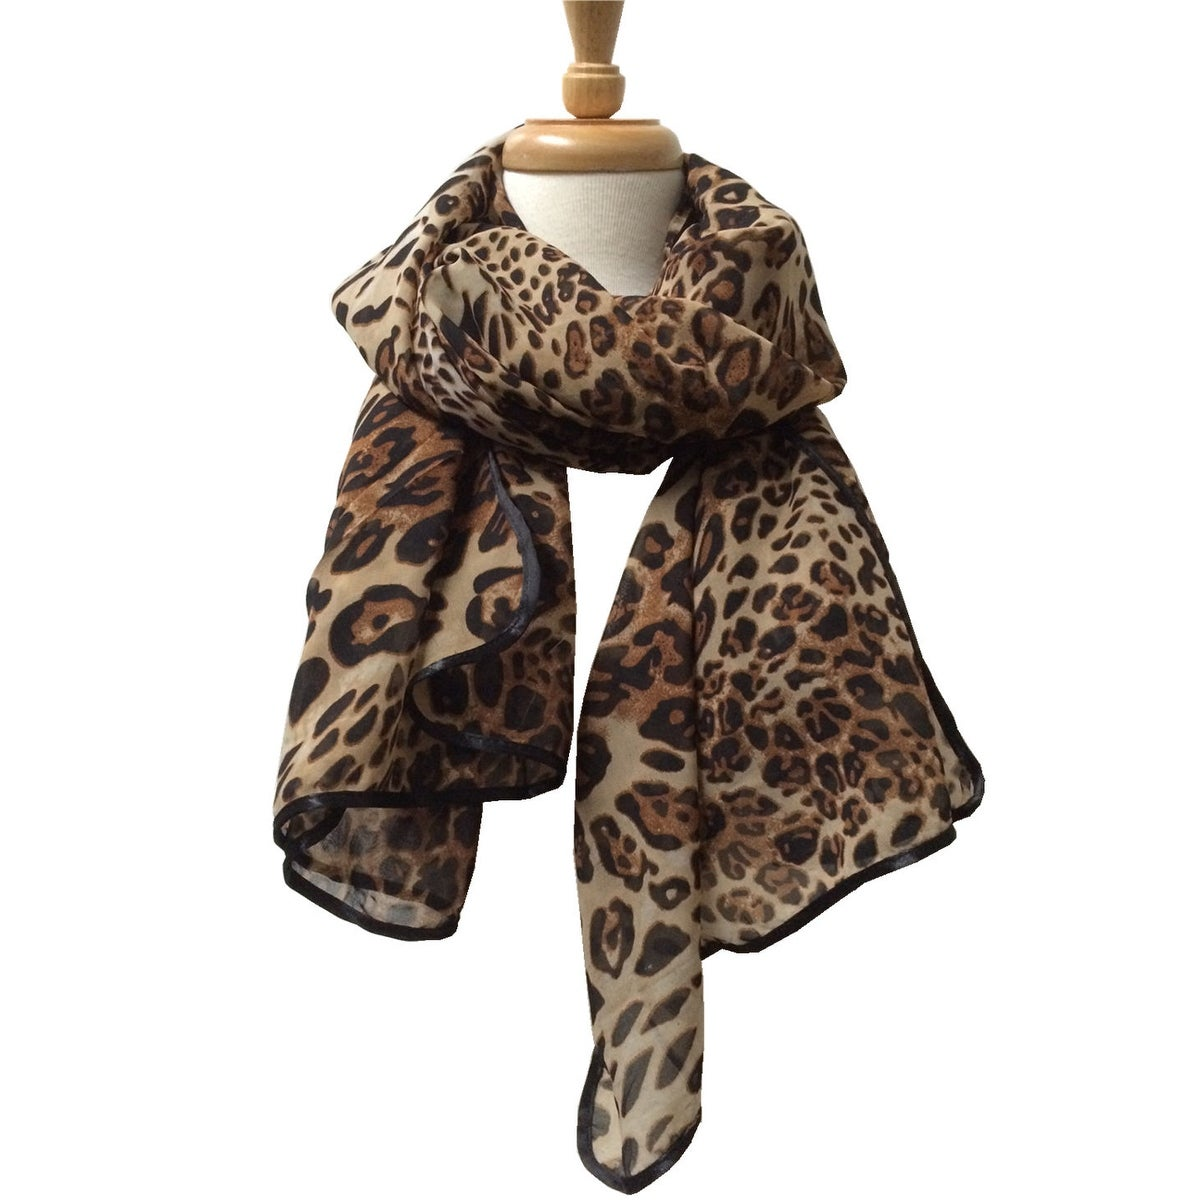 b1041061a7 Buy Acrylic Shawls & Wraps Online at Overstock | Our Best Scarves & Wraps  Deals